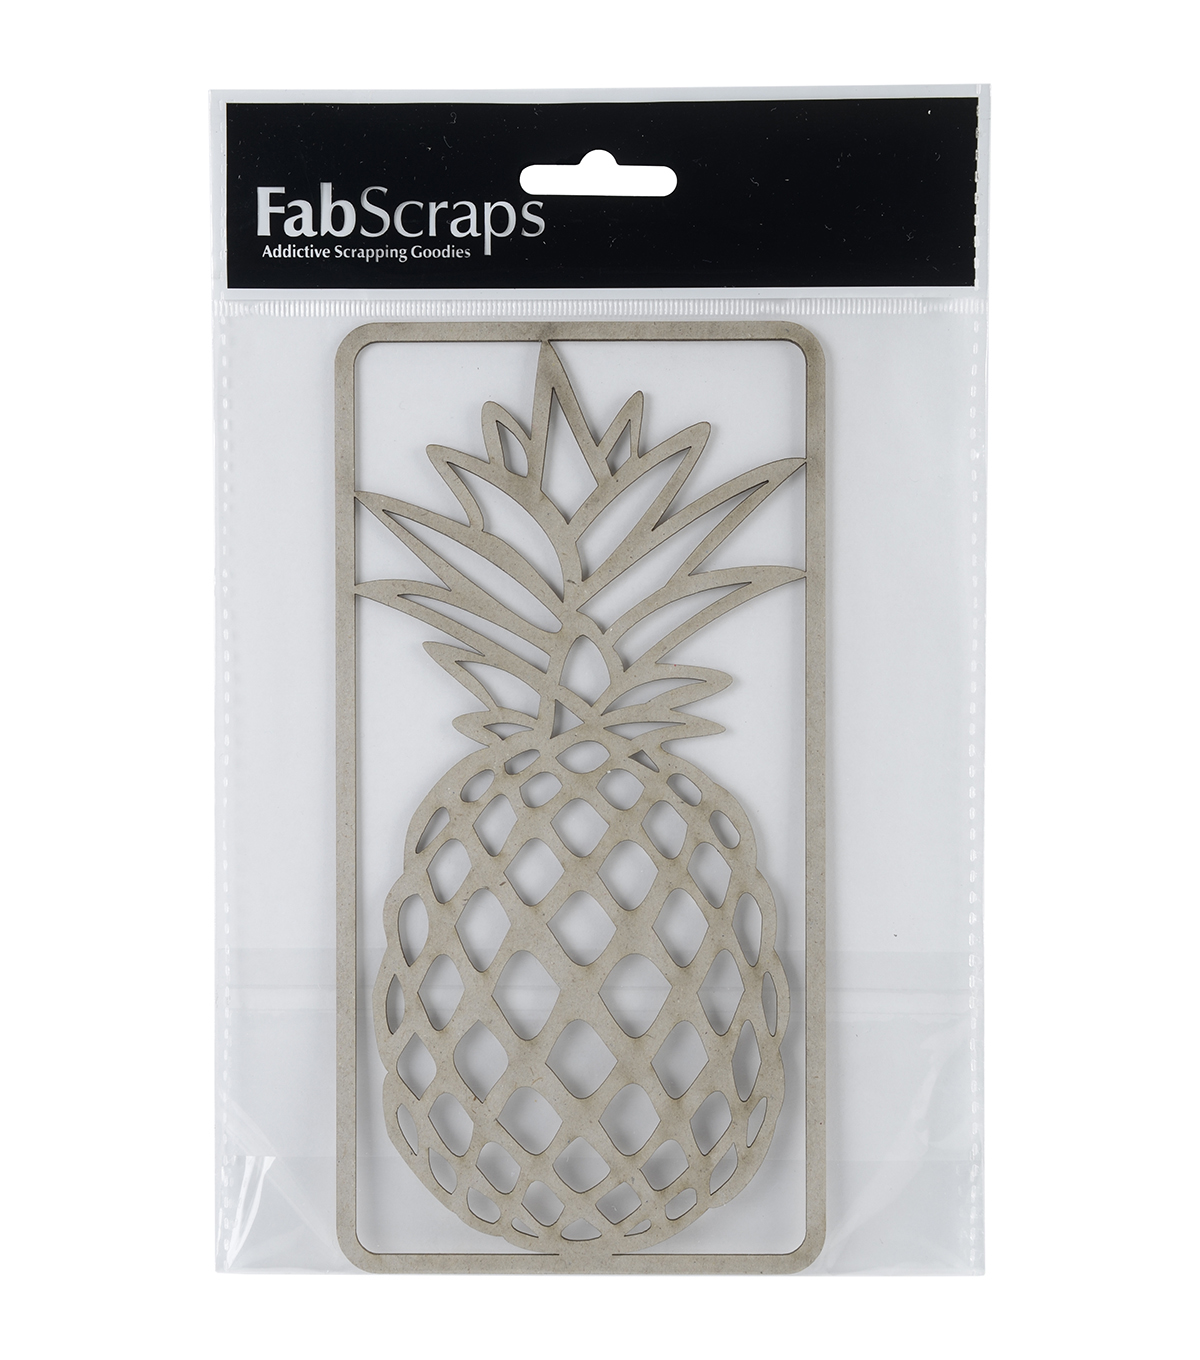 FabScraps Die-Cut Chipboard Embellishments-Large Pineapple